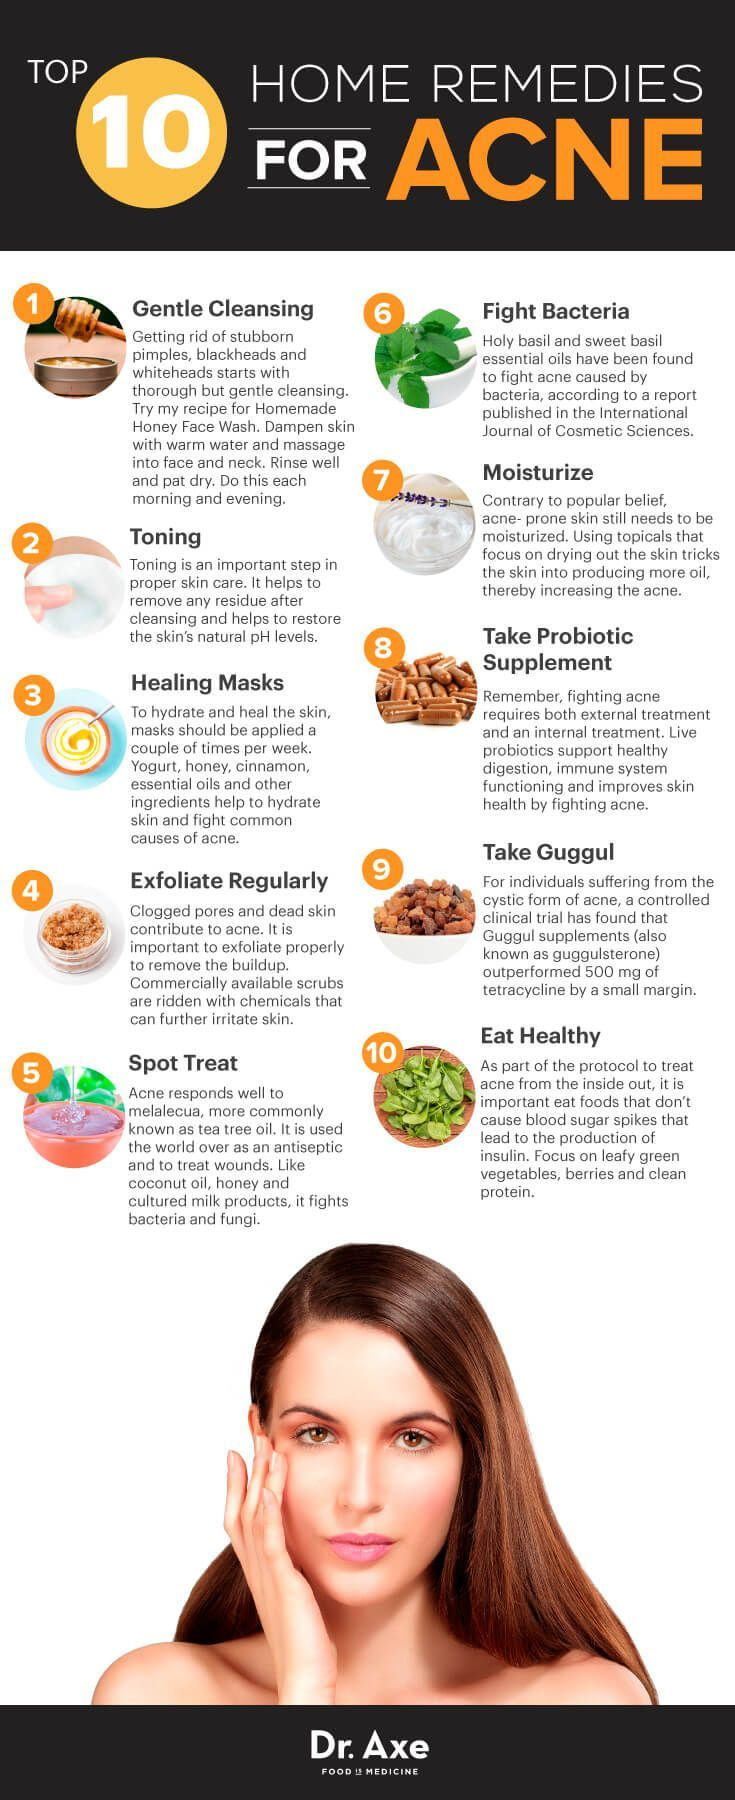 All About Facial Skin Care You Should Know Skin Care Techniques Home Remedies For Acne Natural Acne Skin Remedies